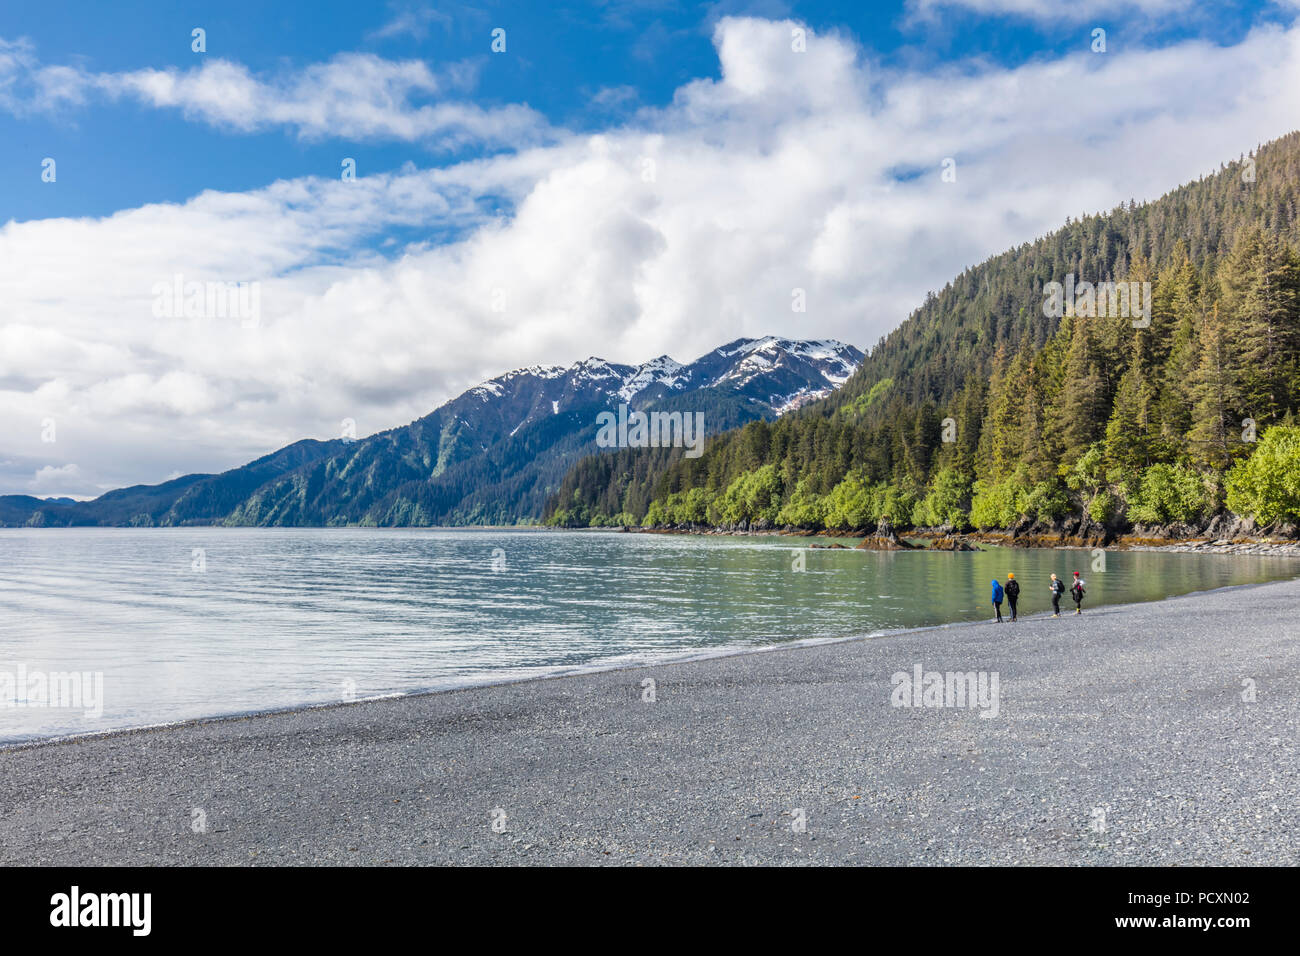 People on bech at Lowell Point on Resurrection Bay in Seward Alaska - Stock Image